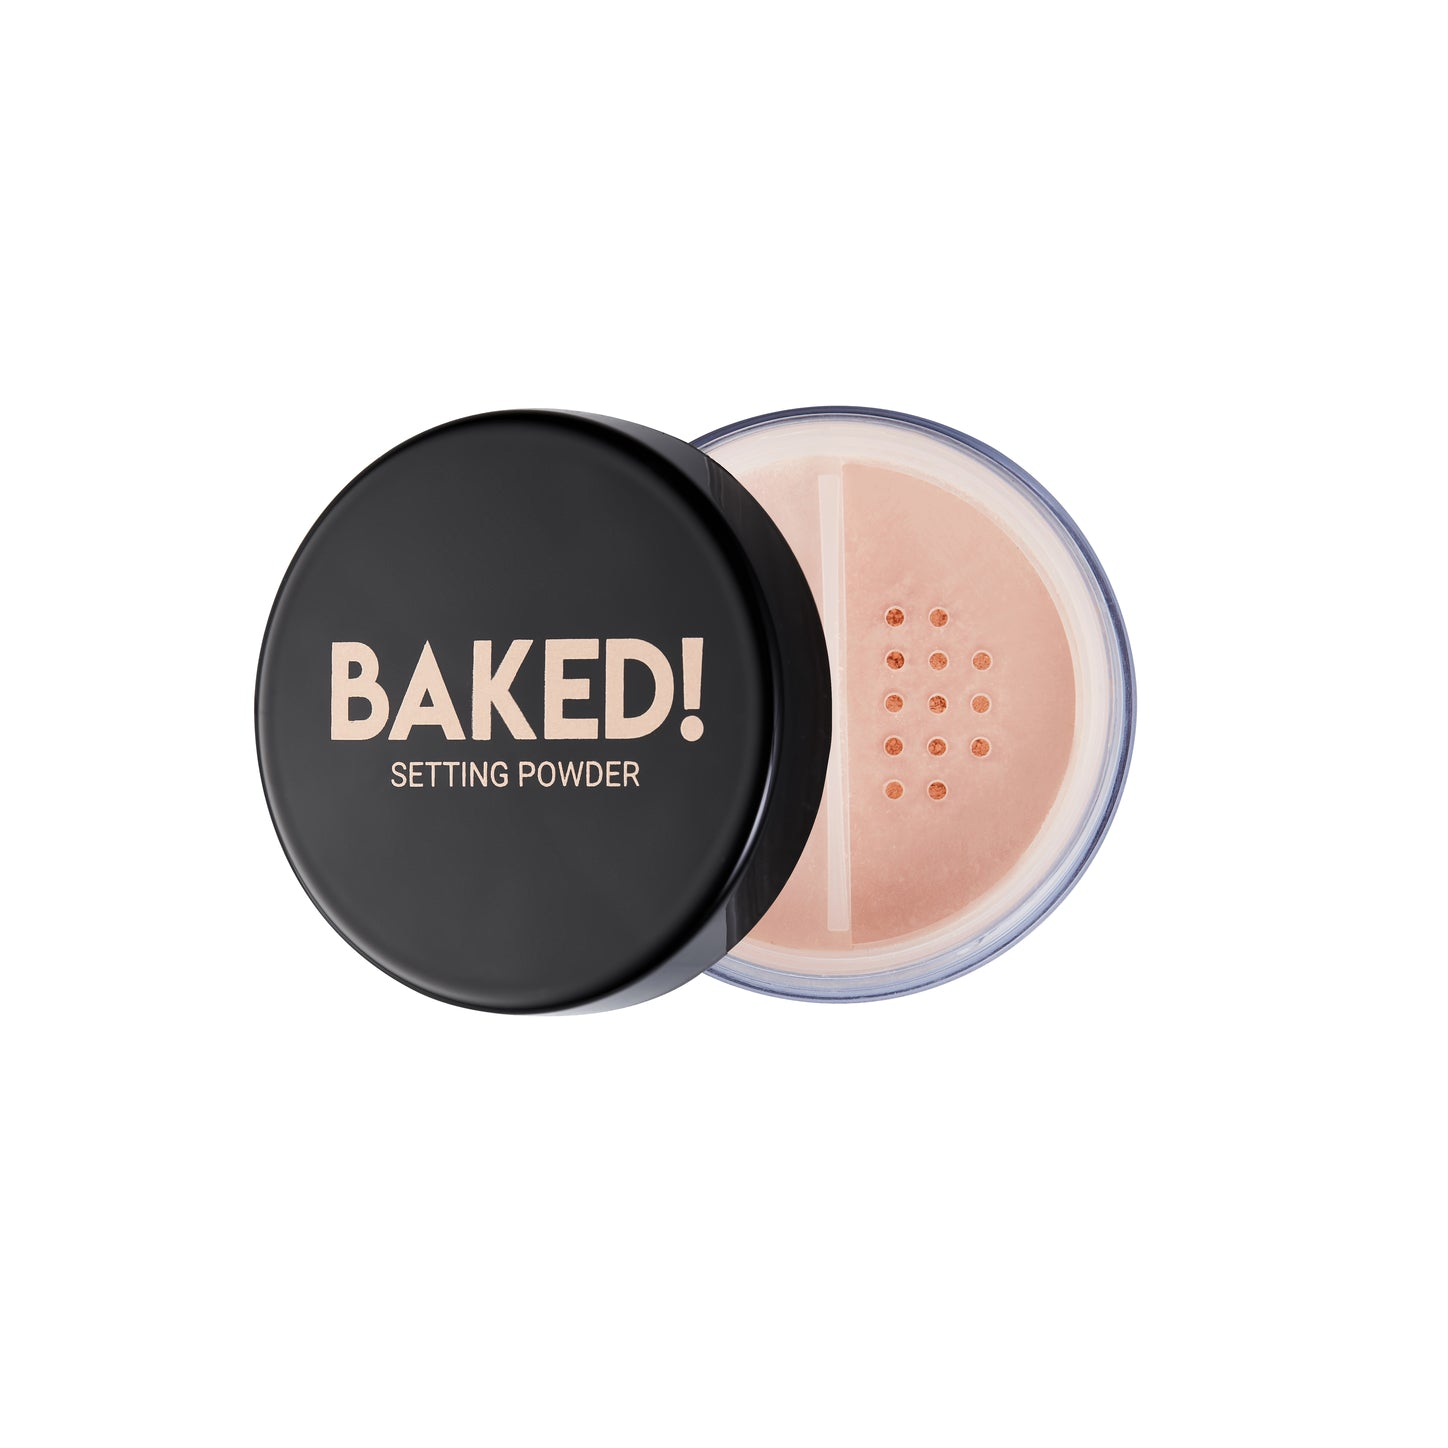 BAKED! Setting Powder - Toffee Duo